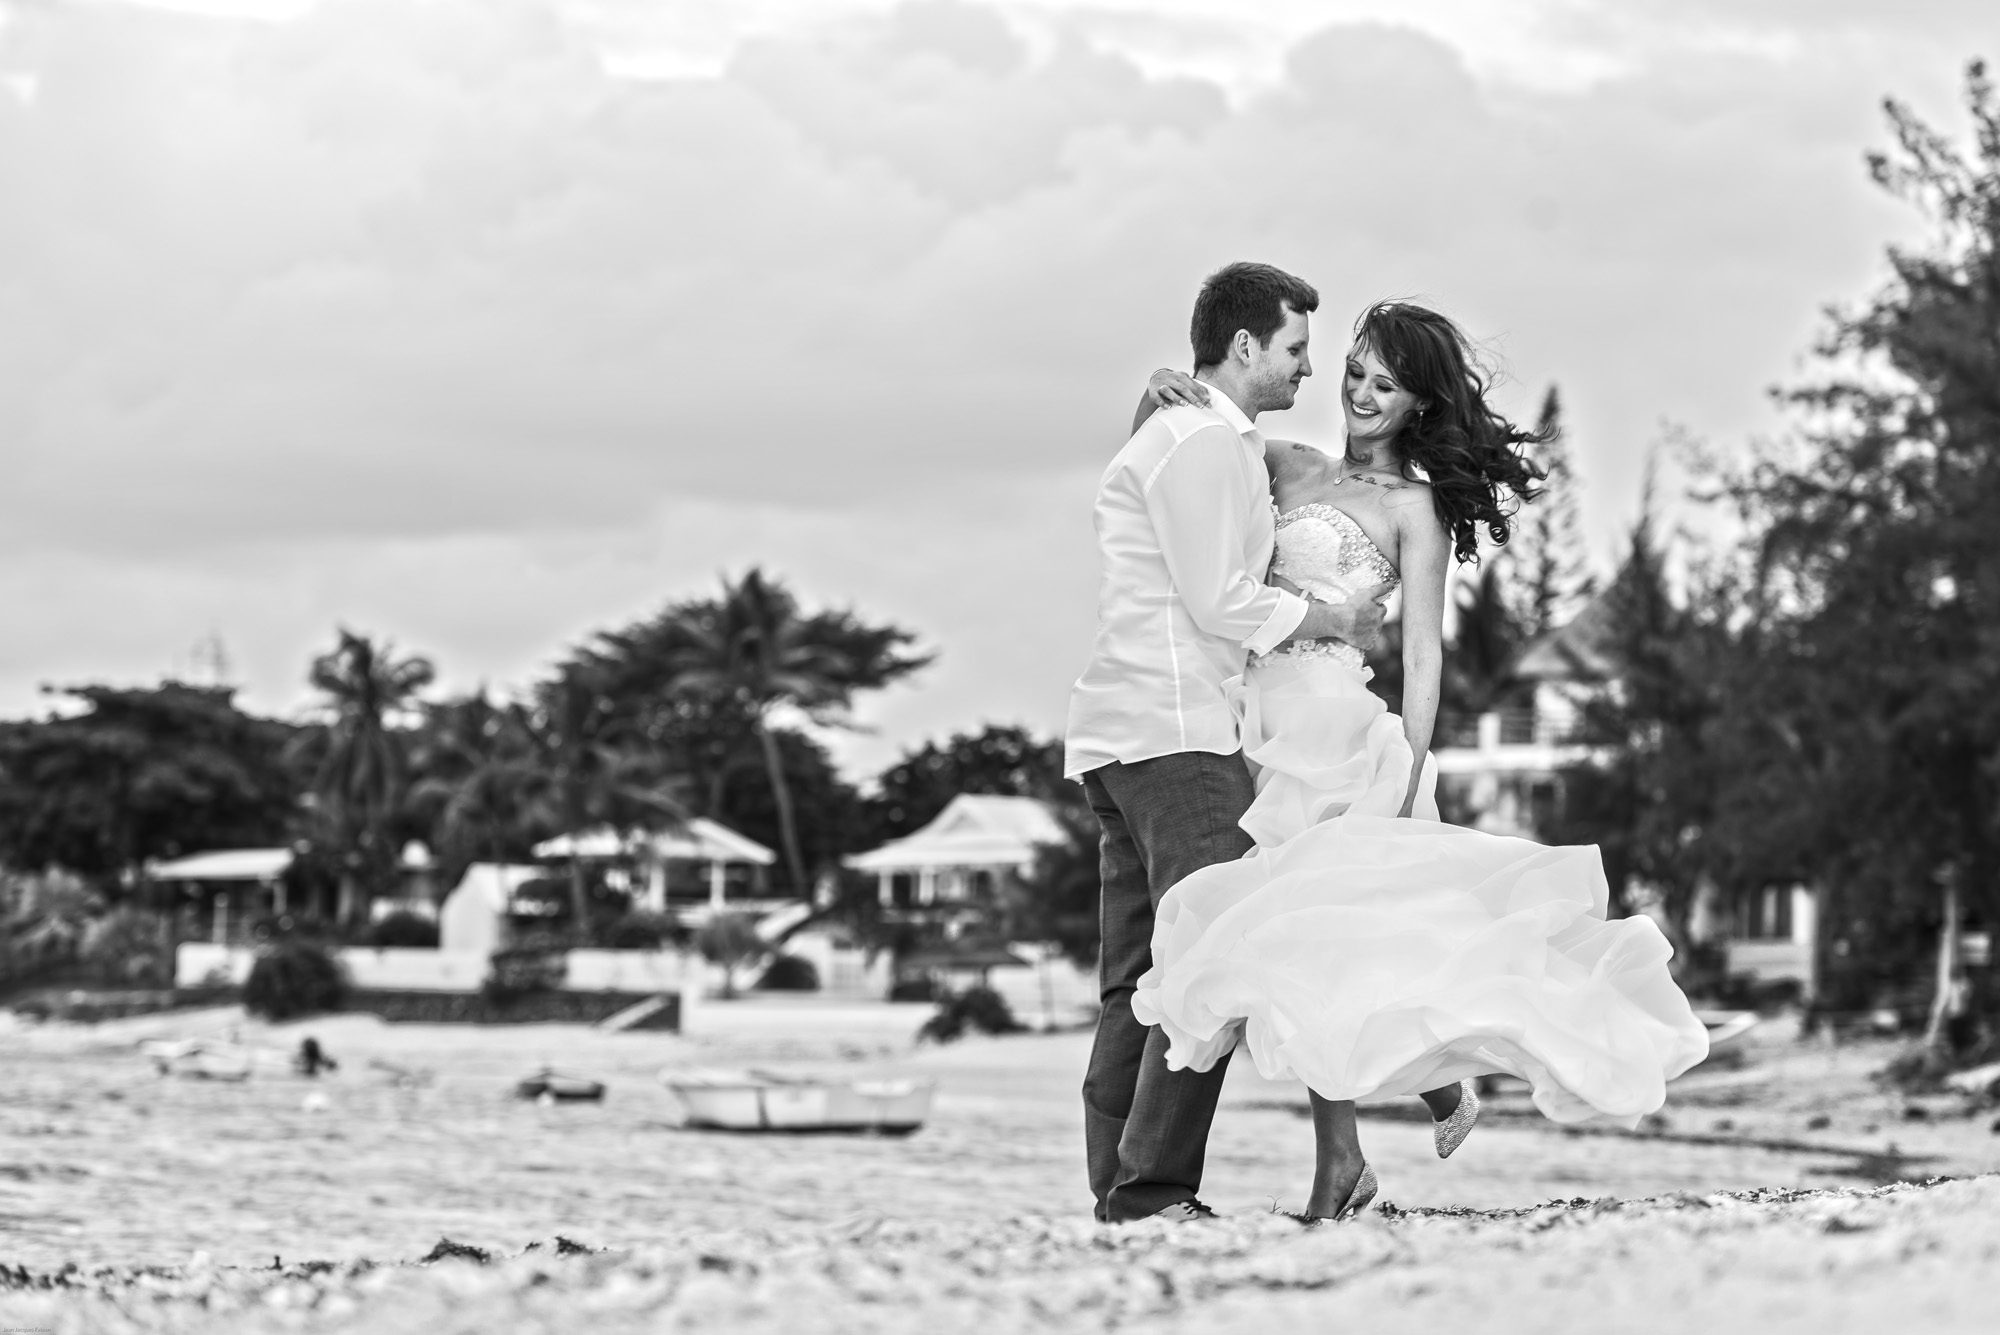 Justyna and Michael-169.jpg